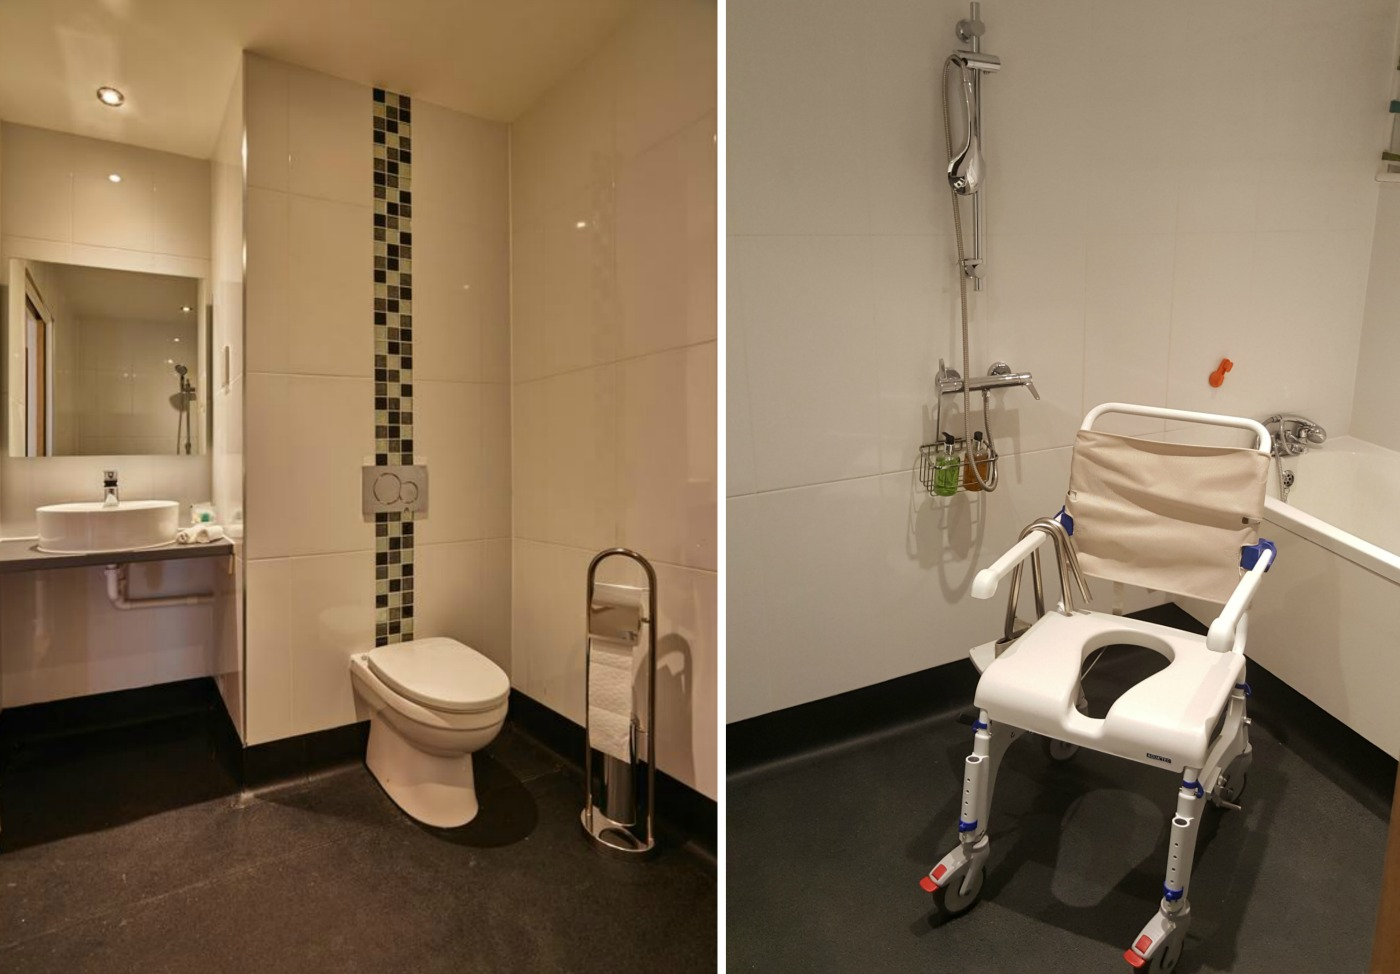 therings-shower-chair-bathroom